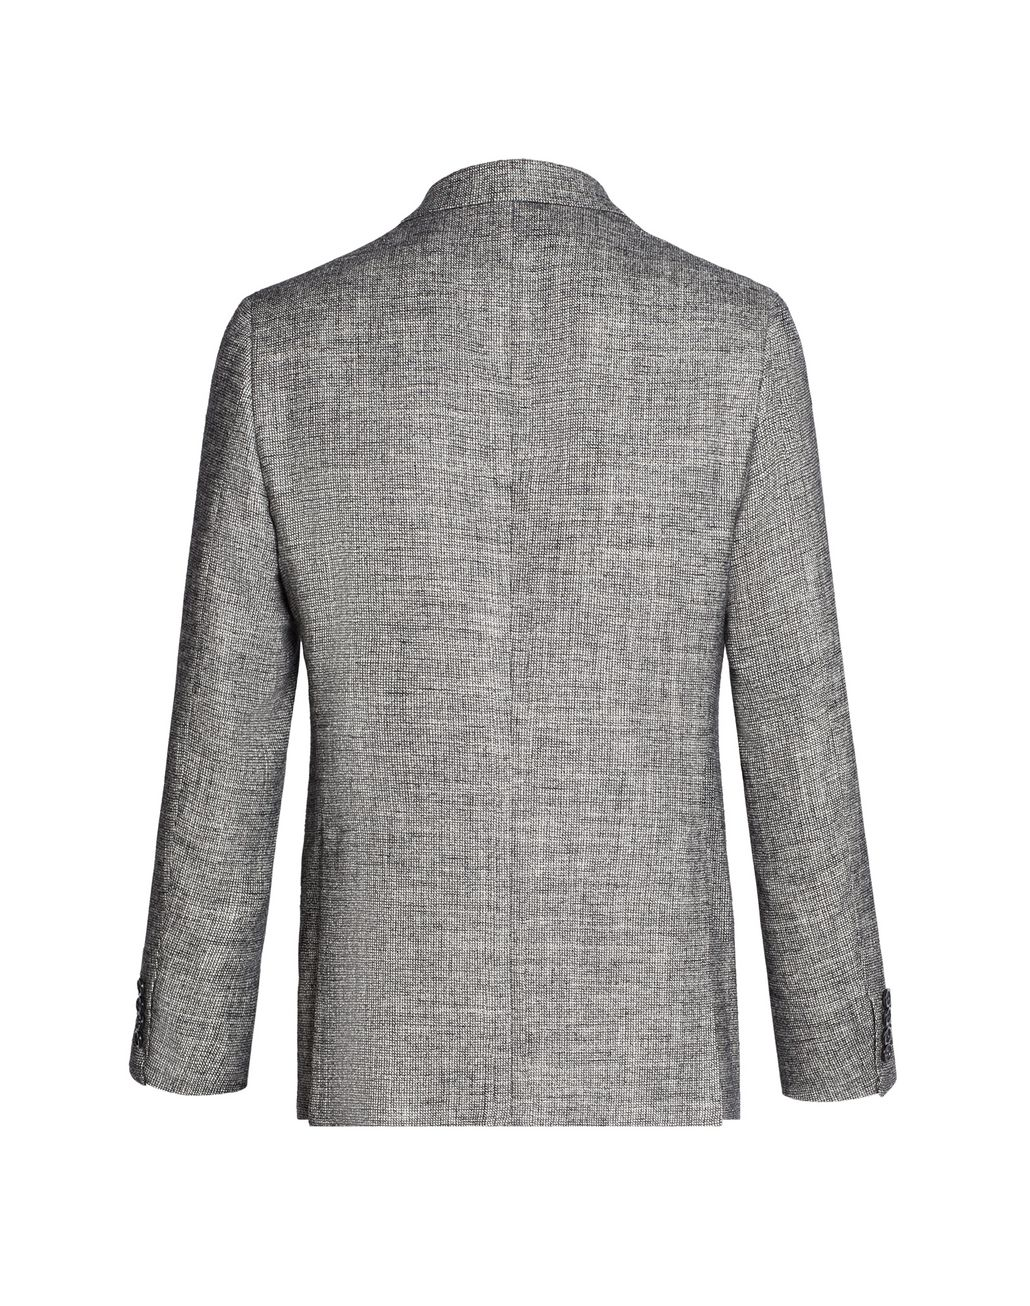 BRIONI Gray and White Ravello Jacket Jackets Man r